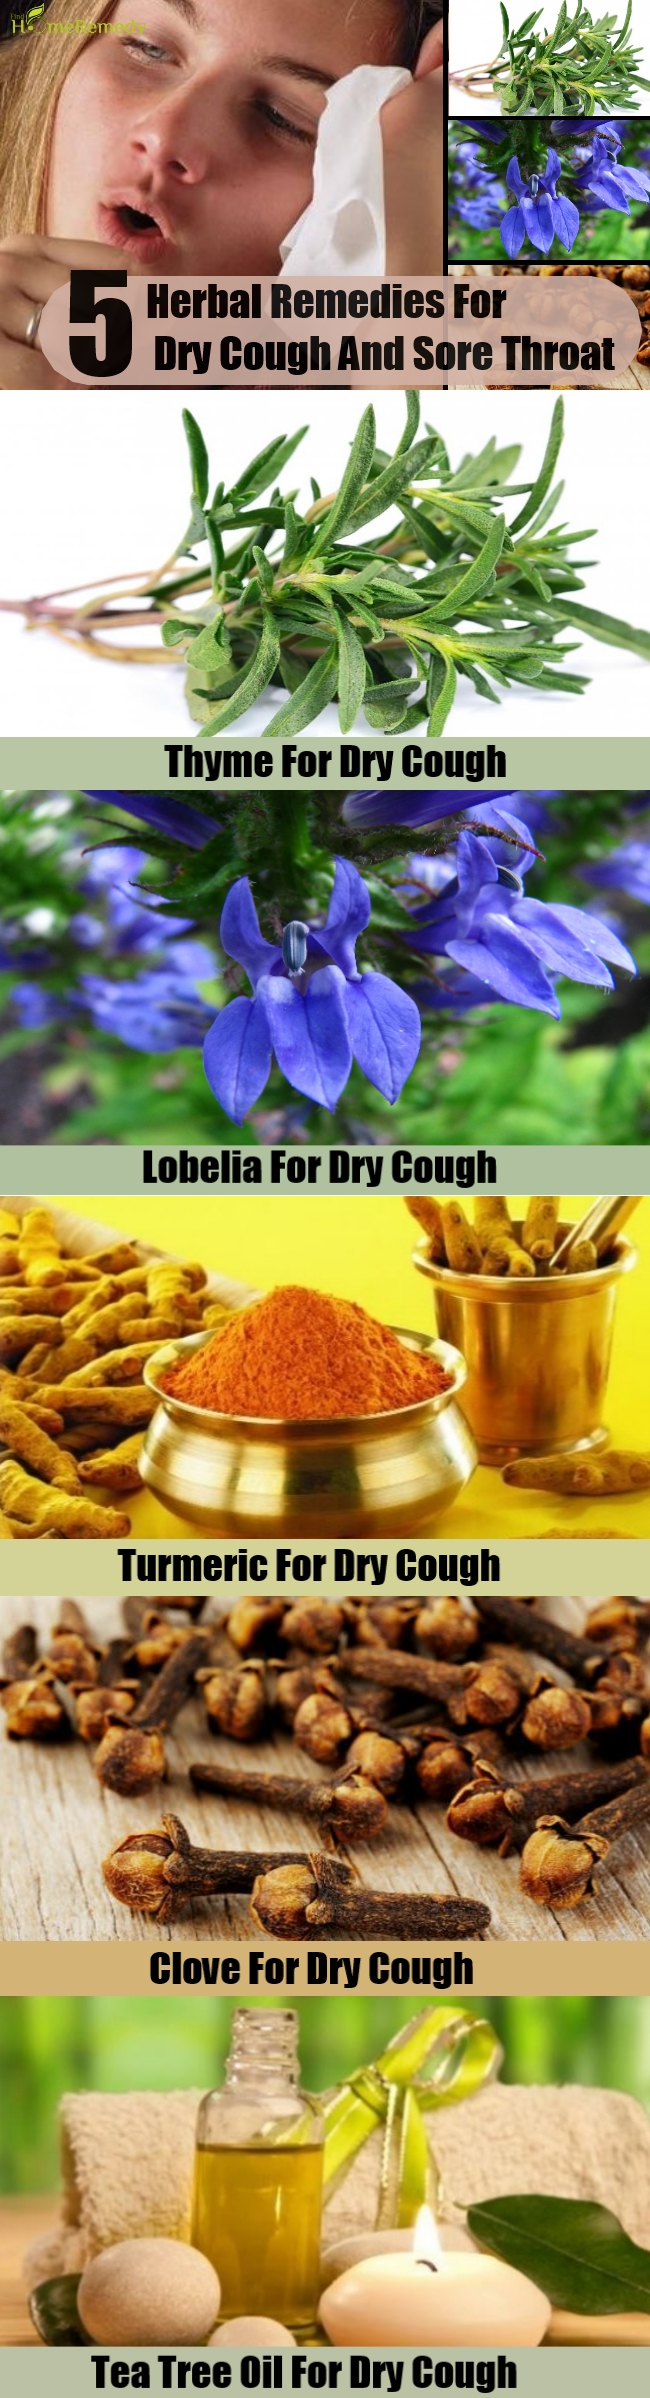 how to get rid of sore throat and cough